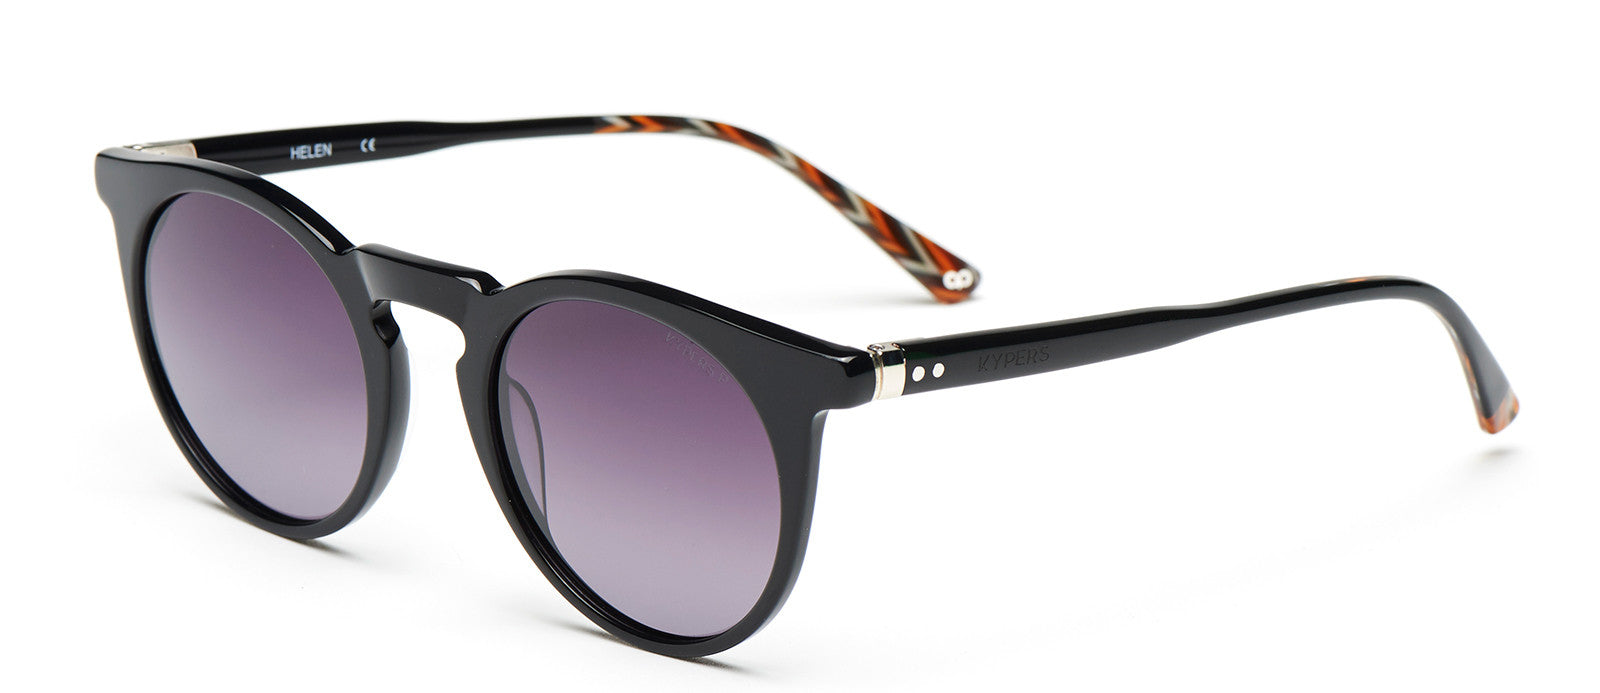 KYPERS sunglasses model HELEN HE002S with black frame and blue mirror lens